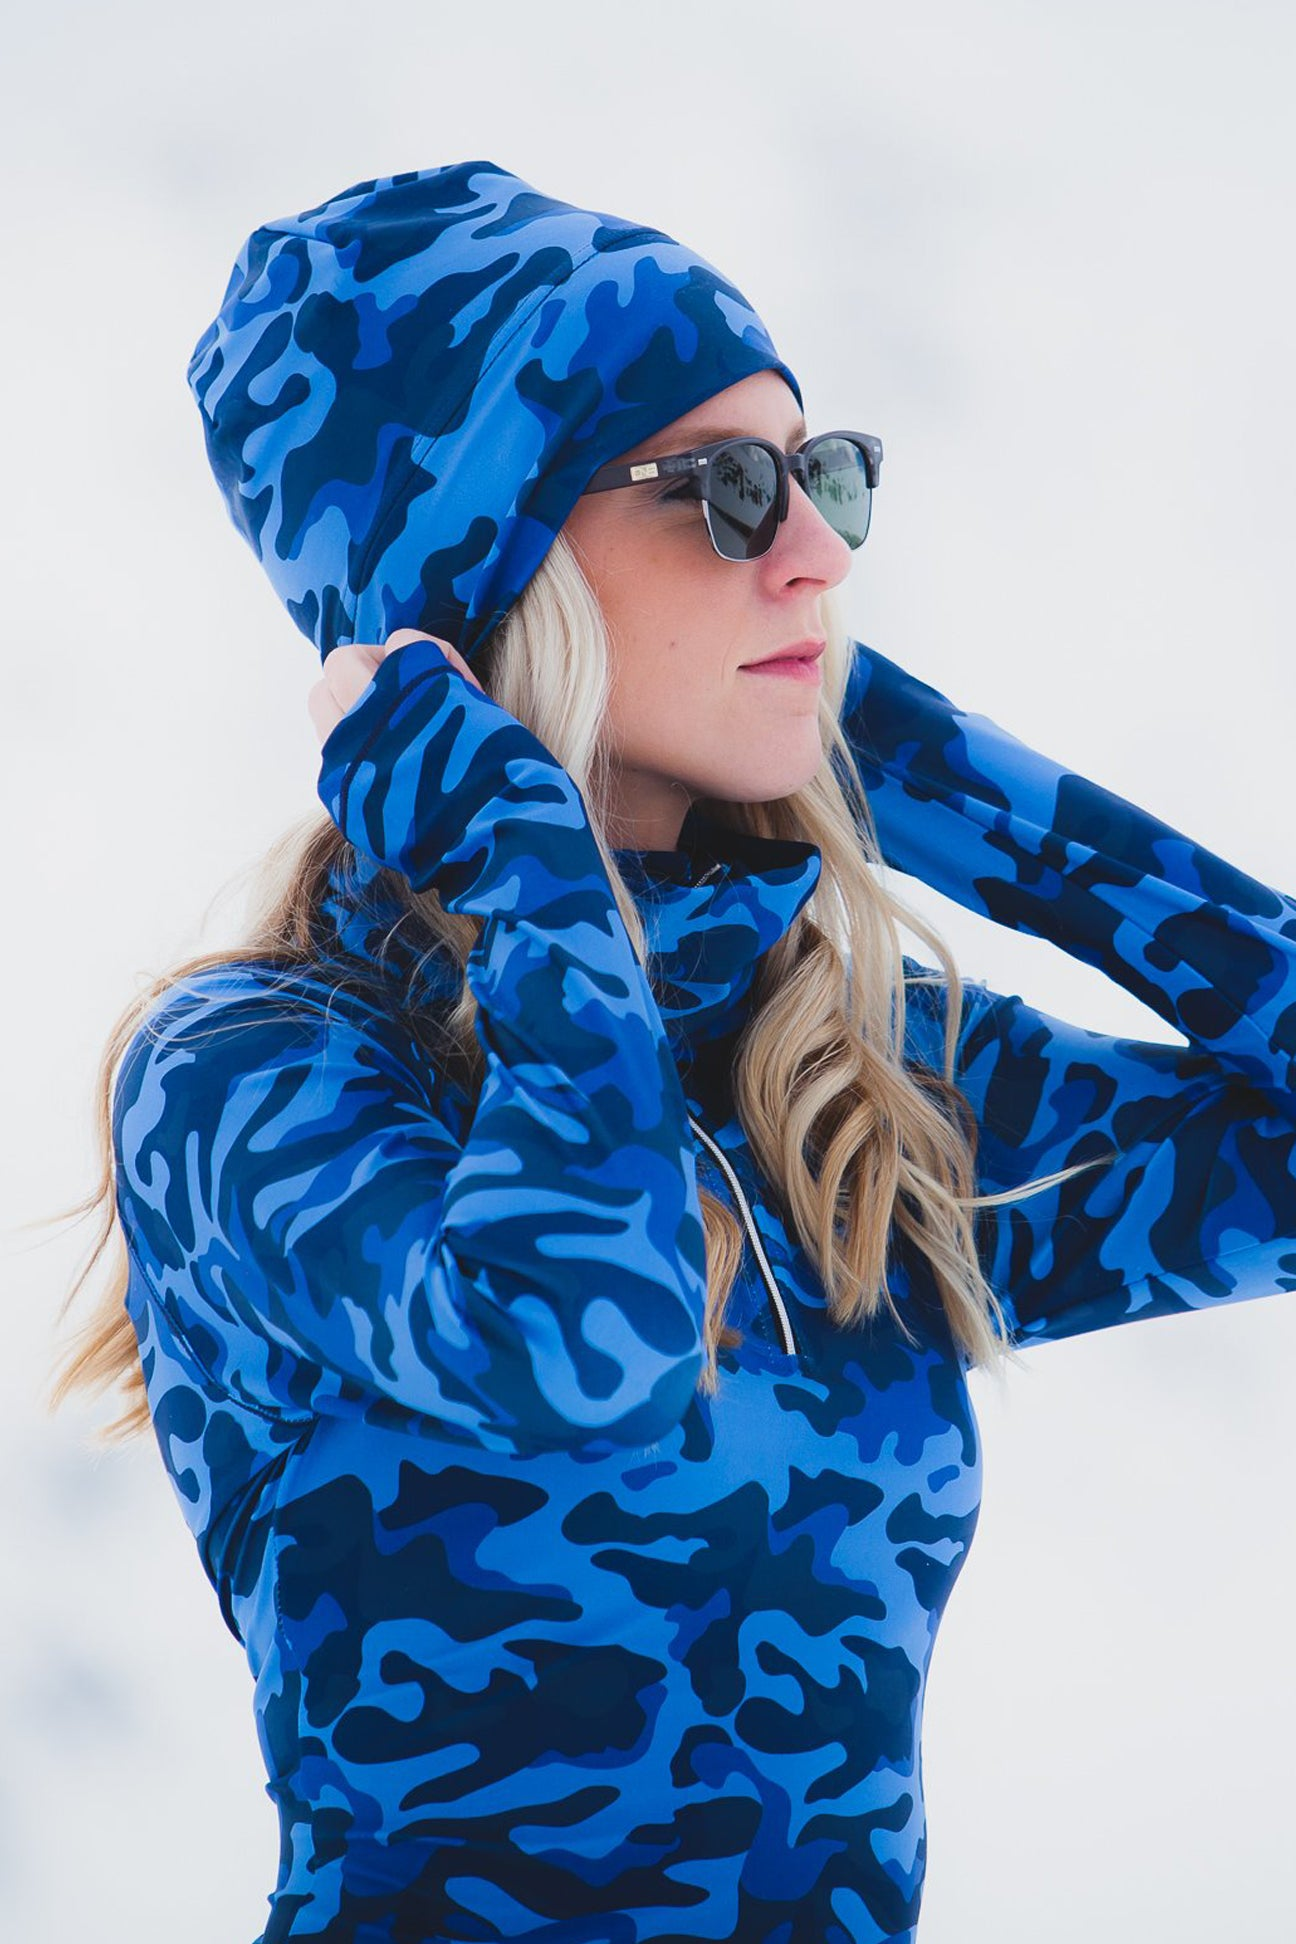 ski jackets, ski pants, luxury skiwear, ski apparel, ski fashion, fur ski apparel, fur trim, Bell Hat, Skea Limited, Skea Limited - Skea Limited